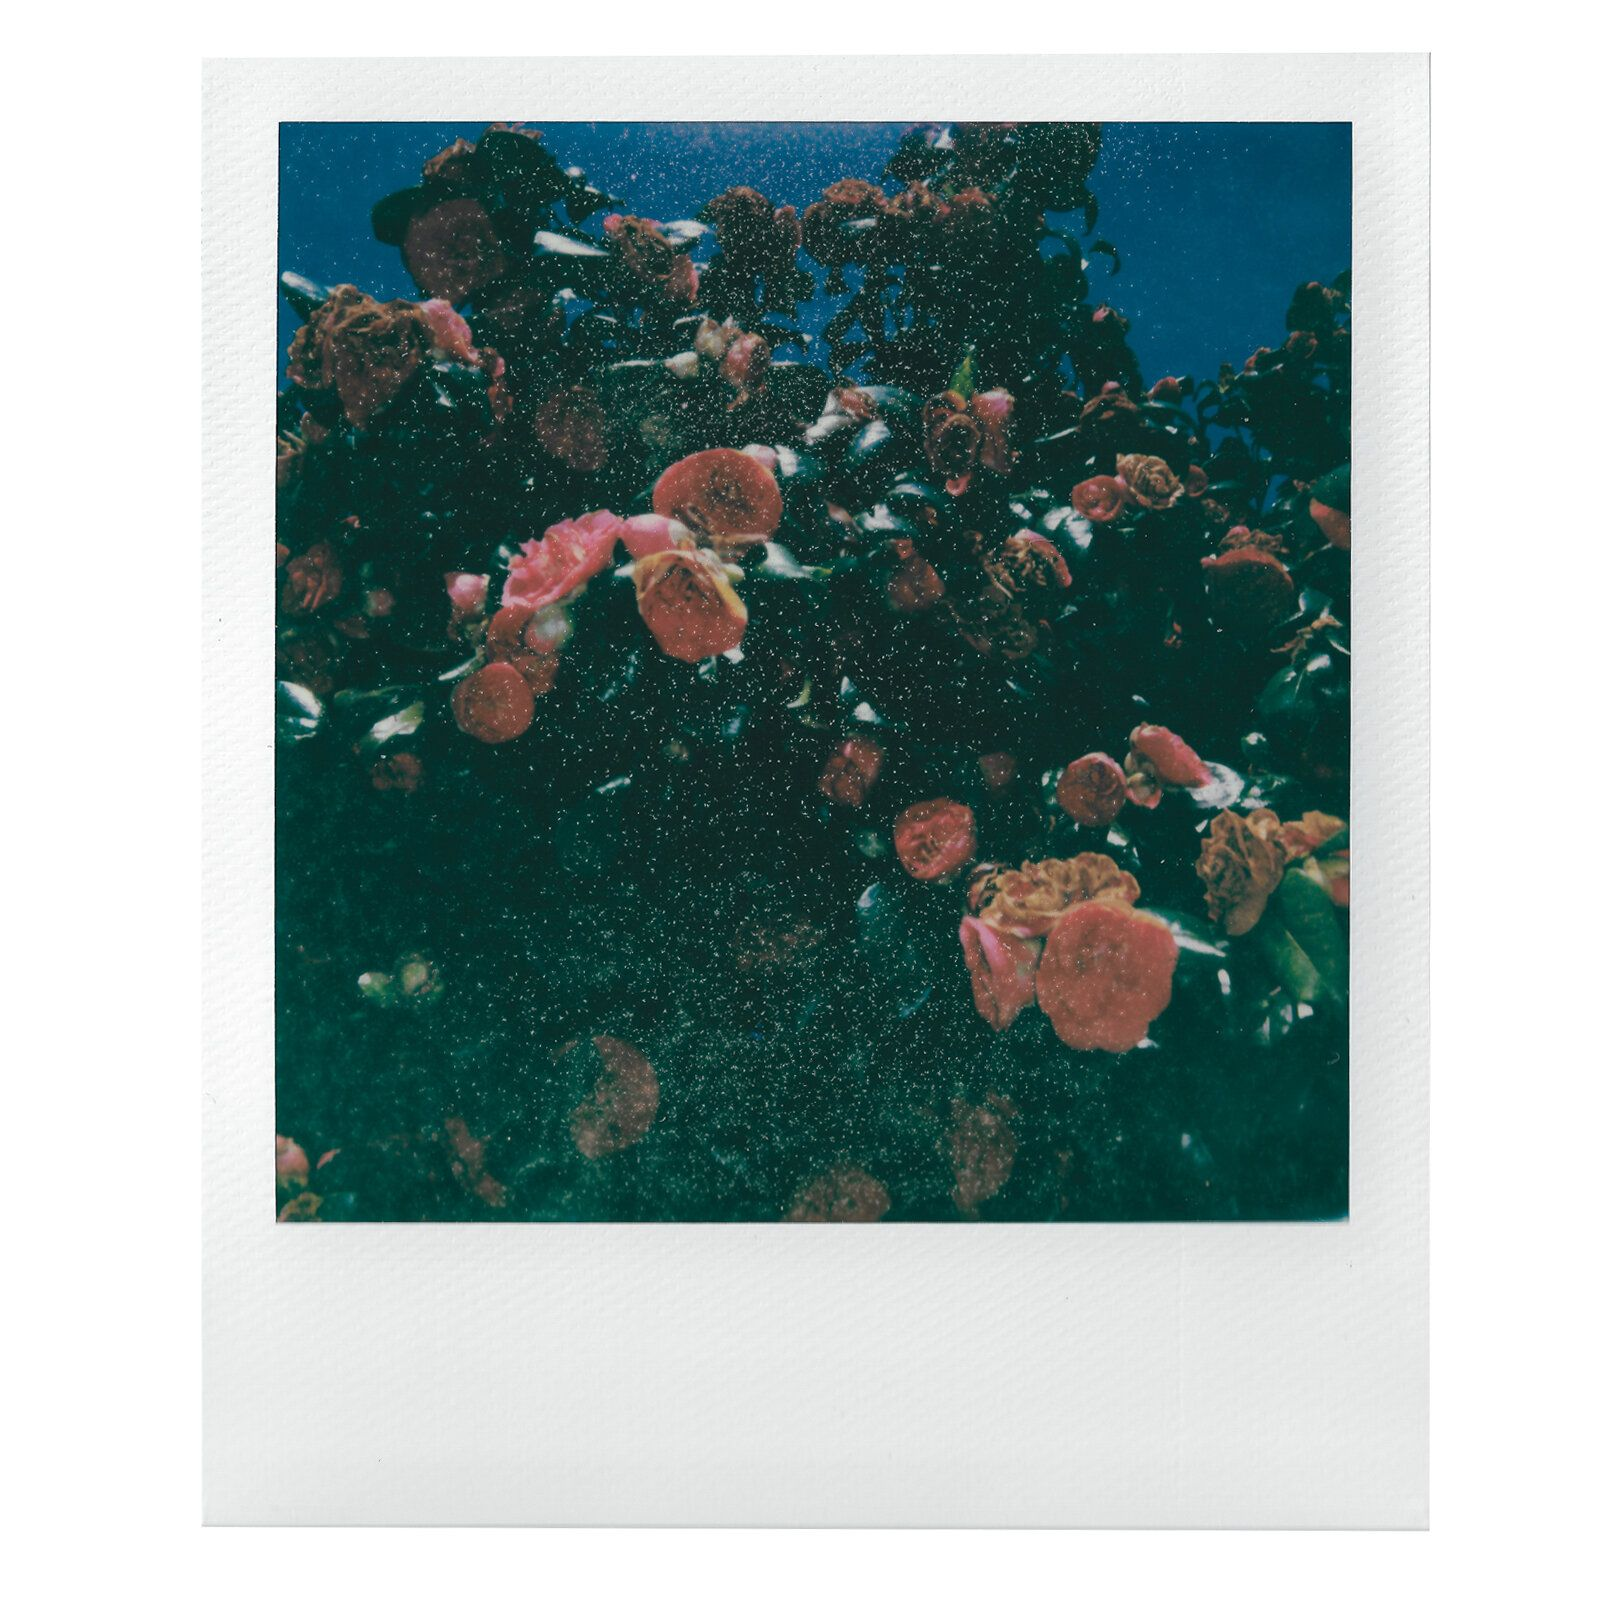 Polaroid image of a rose bush